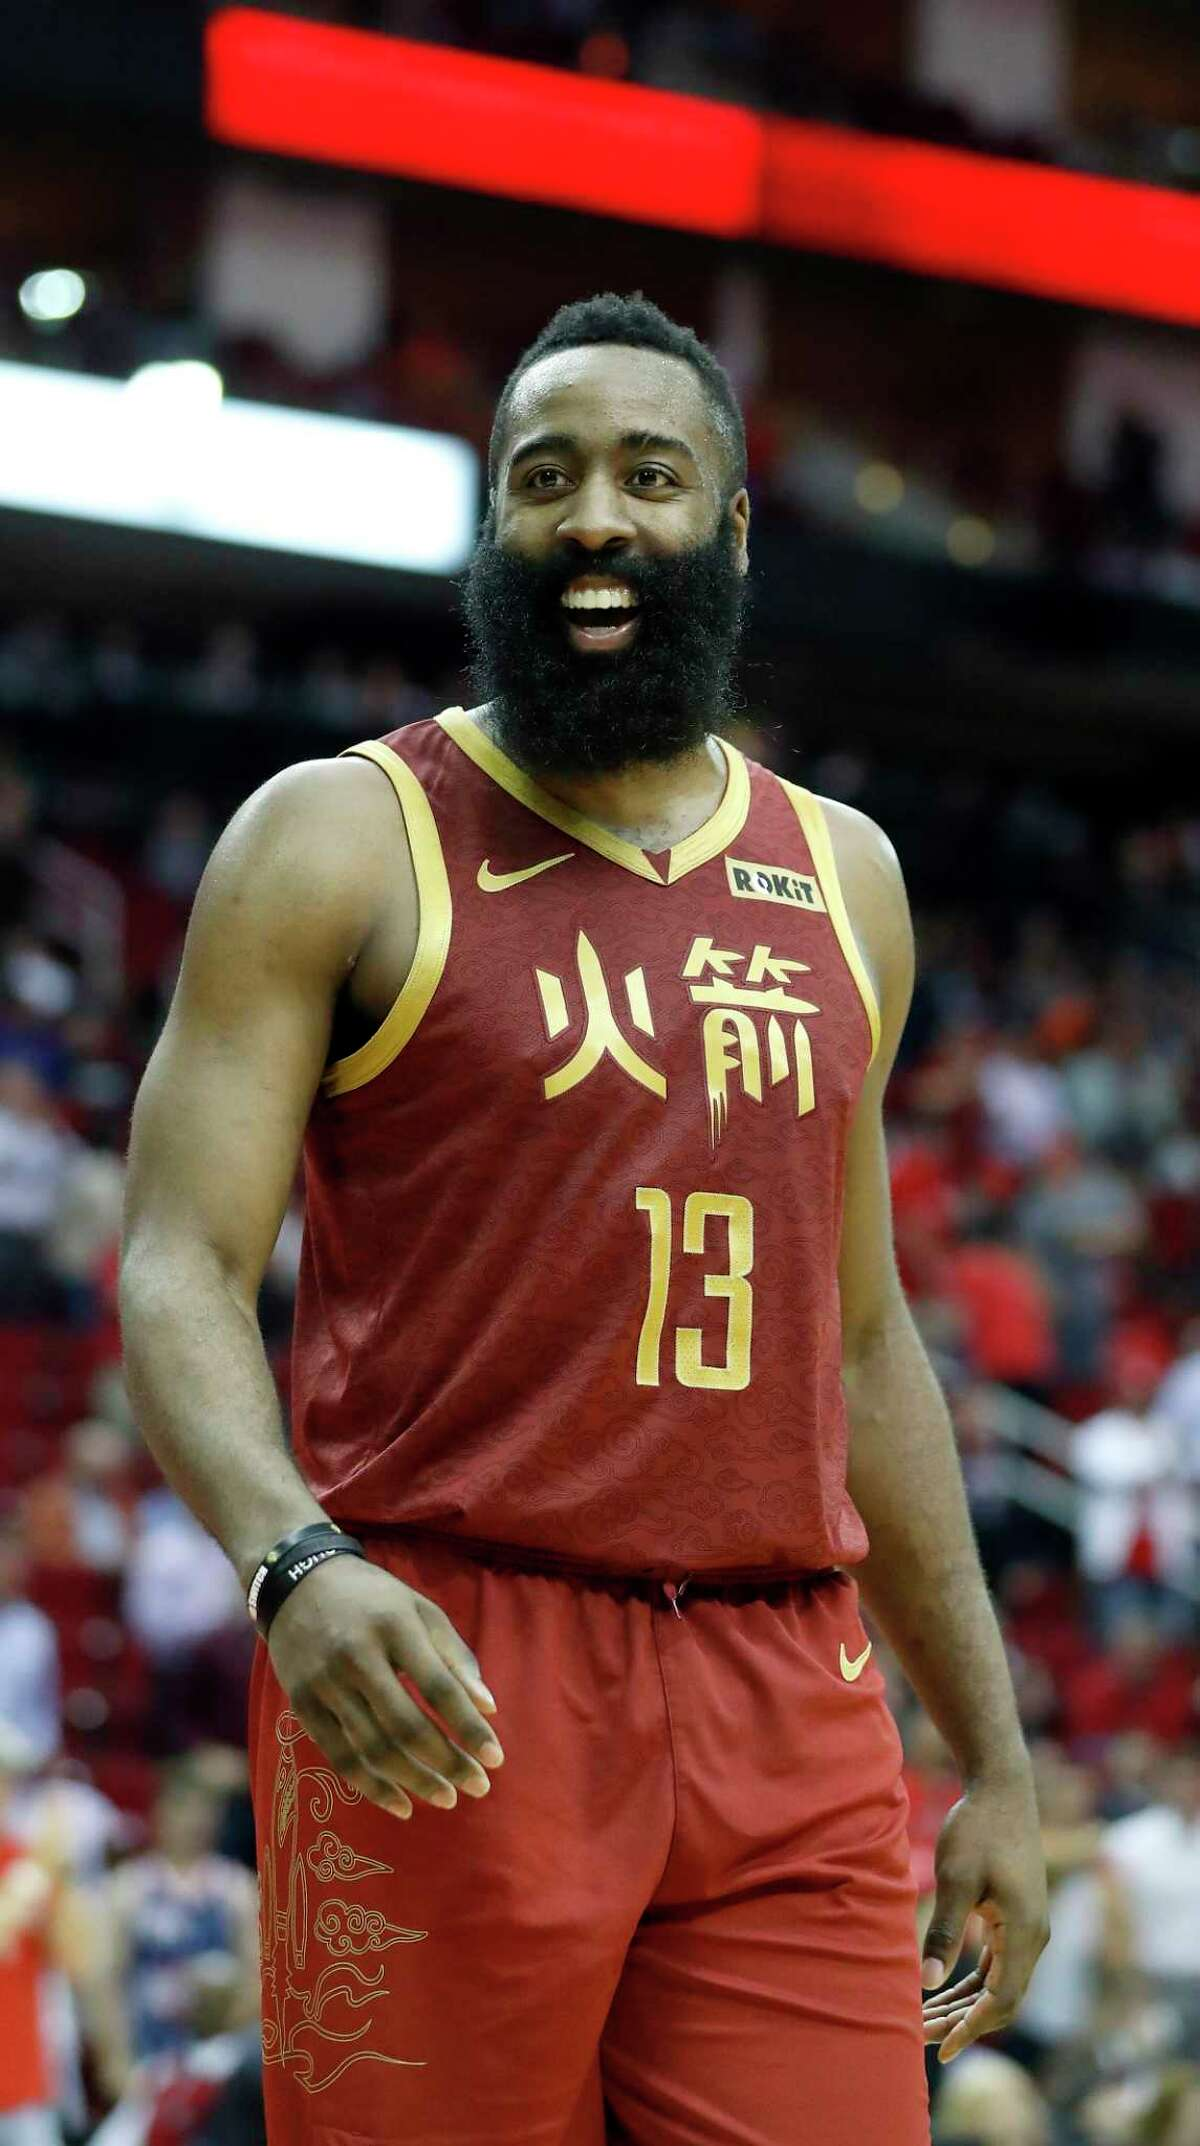 Houston Rockets guard James Harden (13) smiles in the final minute of play during the second half of an NBA game at the Toyota Center, Monday, Feb. 11, 2019, in Houston.